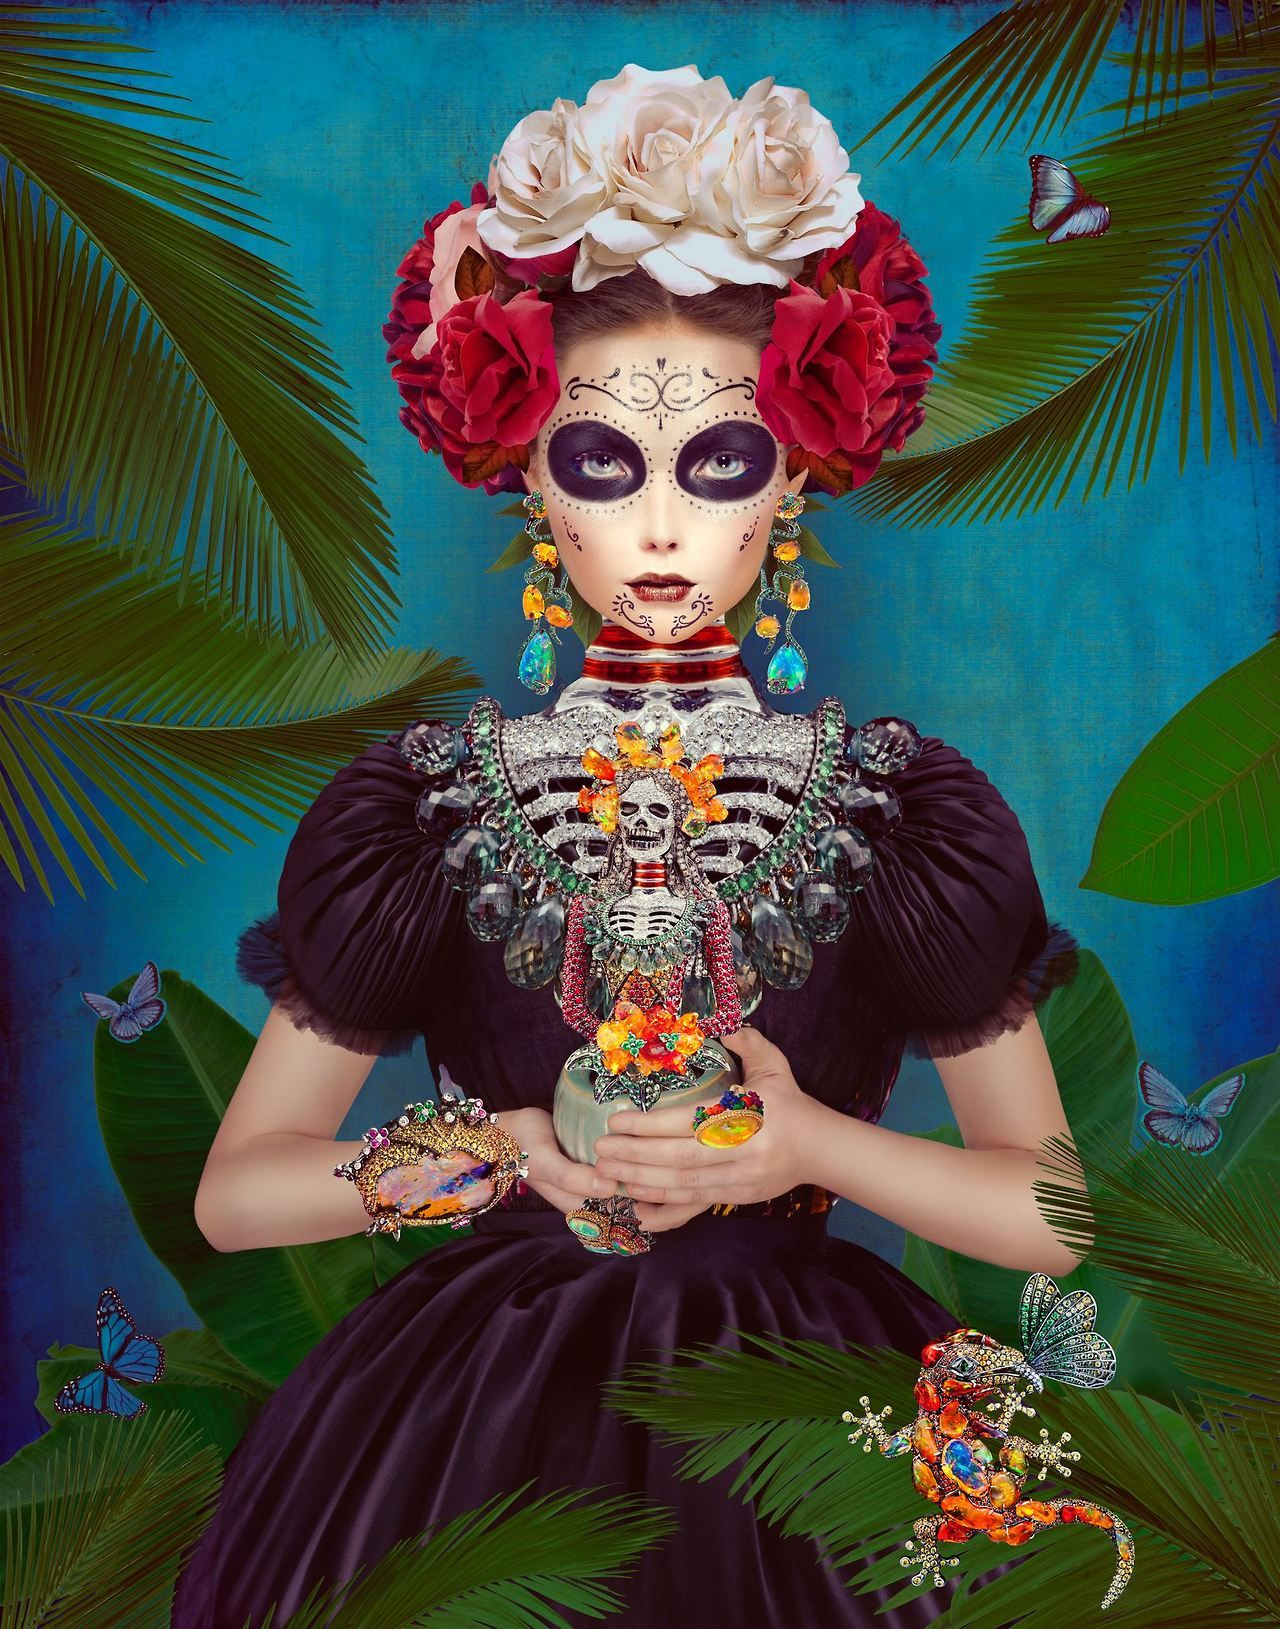 Natalie Shau Mexican Traditional Art Style Frida Kahlo Inspired Painting Great Wall Made Large For A Day Of The Dead Or Fiesta Party